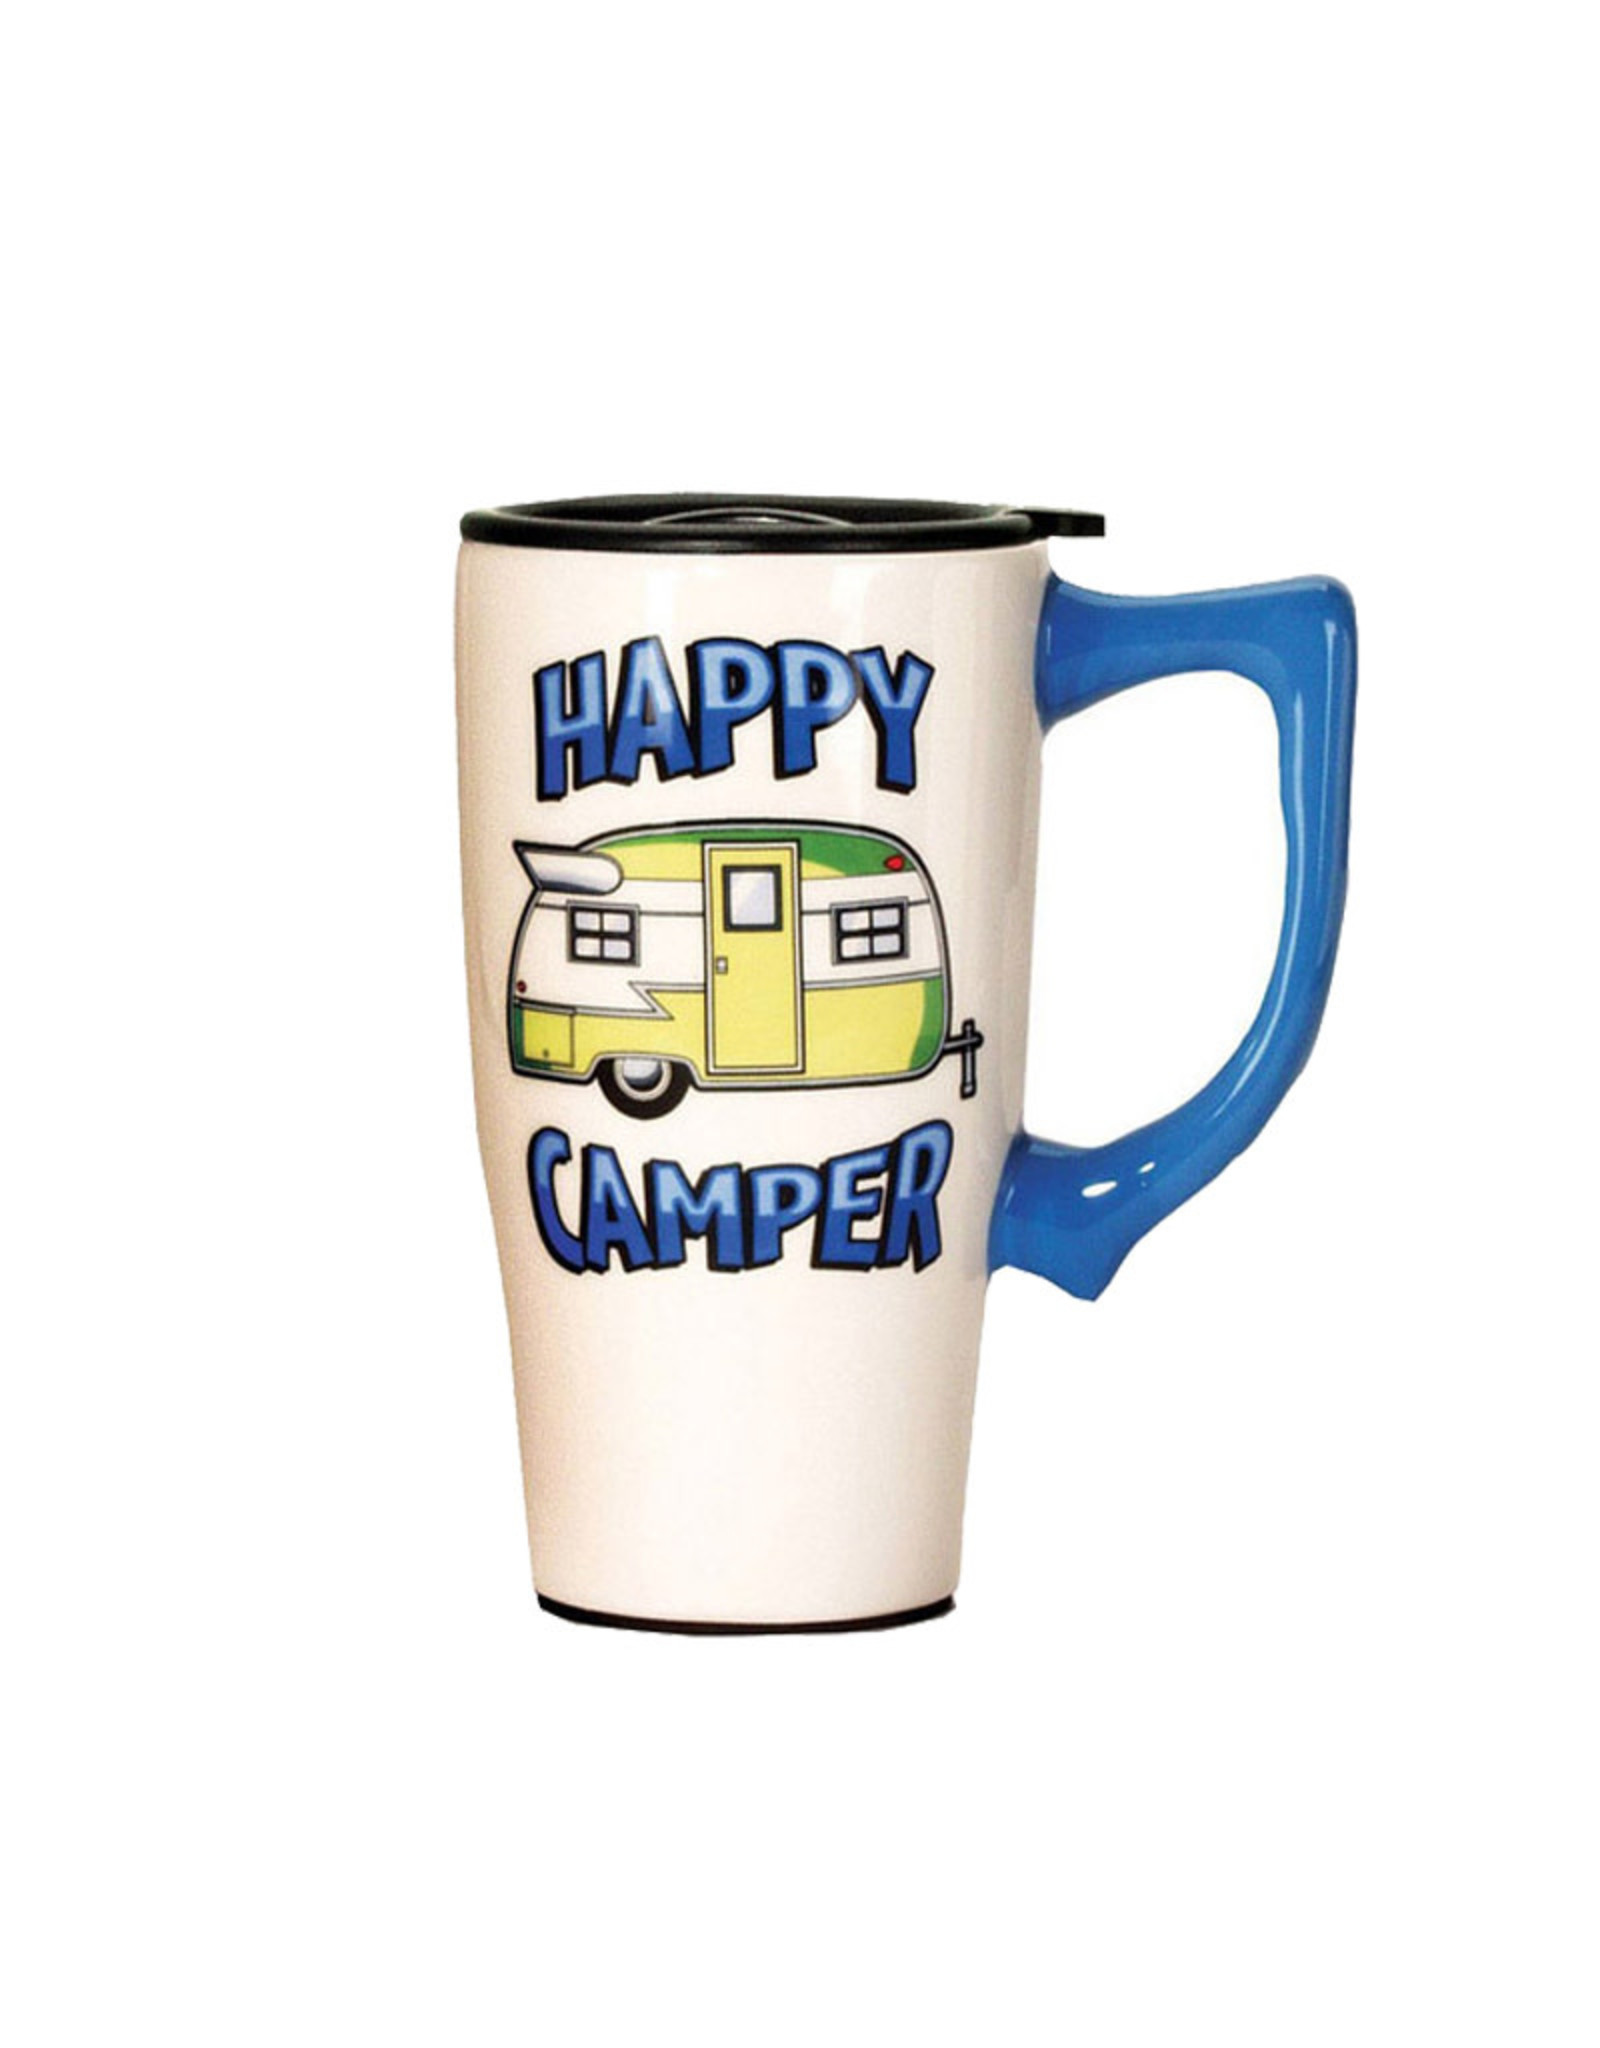 Happy Camper ( Ceramic Travel Mug )